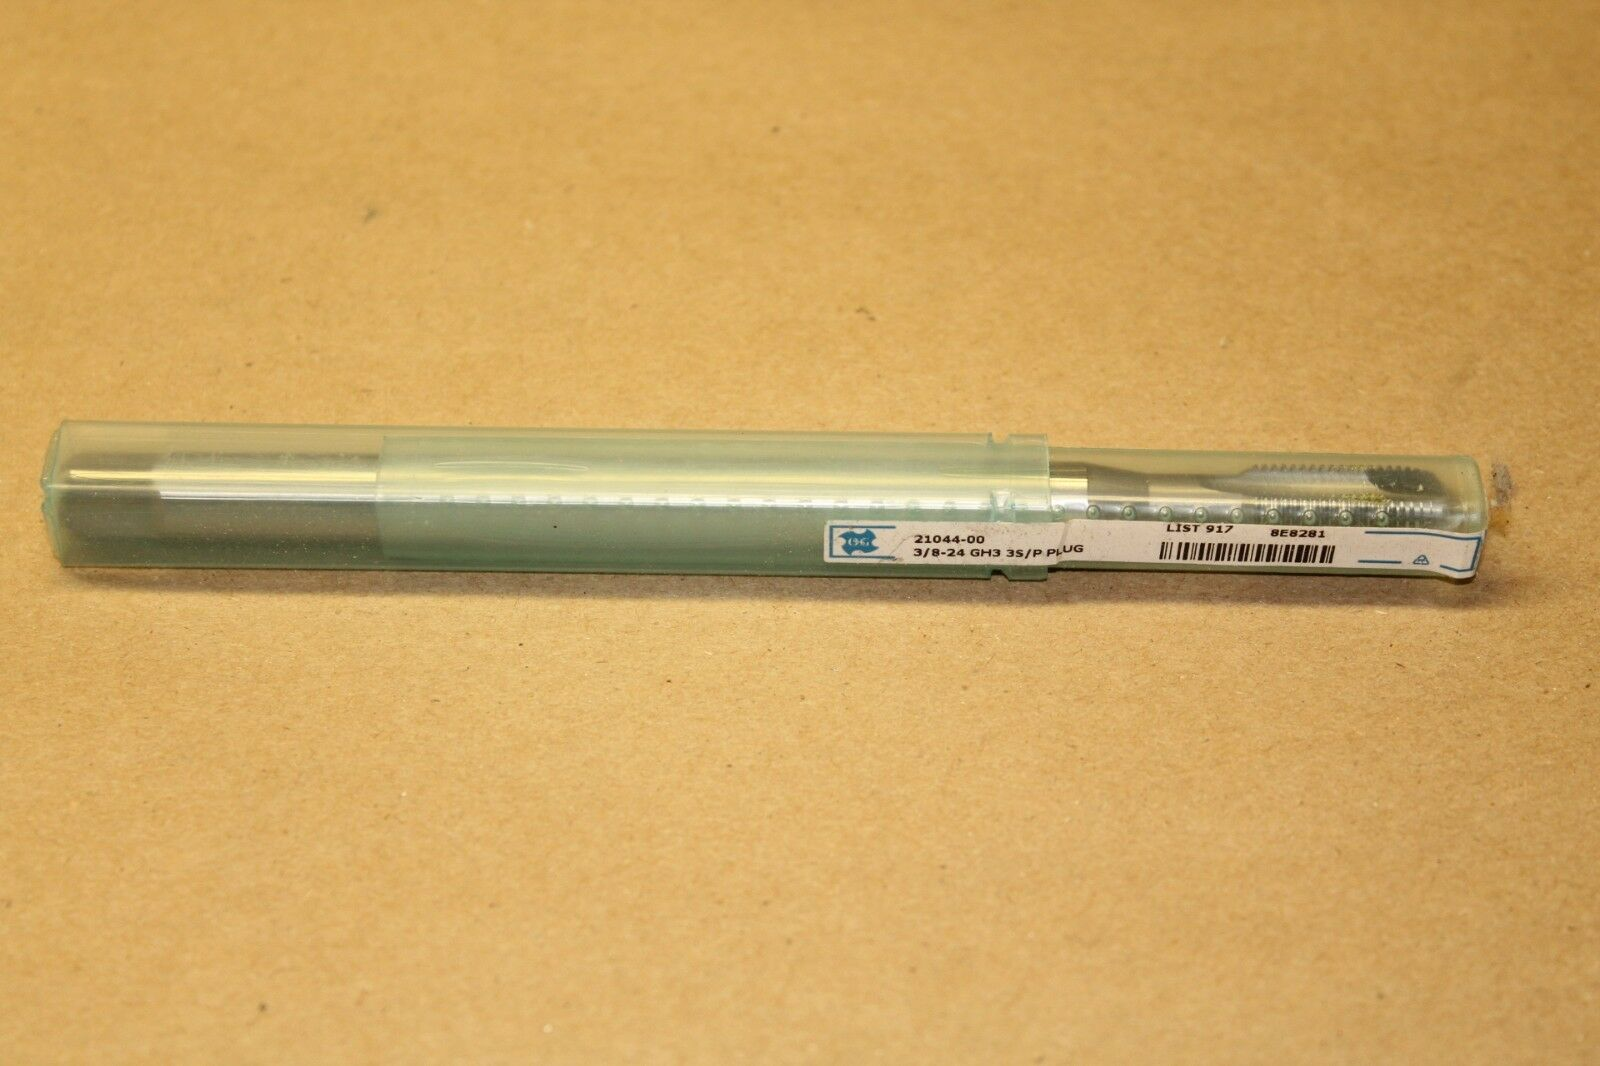 OSG M8 x 1.25 0H3 4FL Carbide Tap 06419TP Japan #12B-A0293